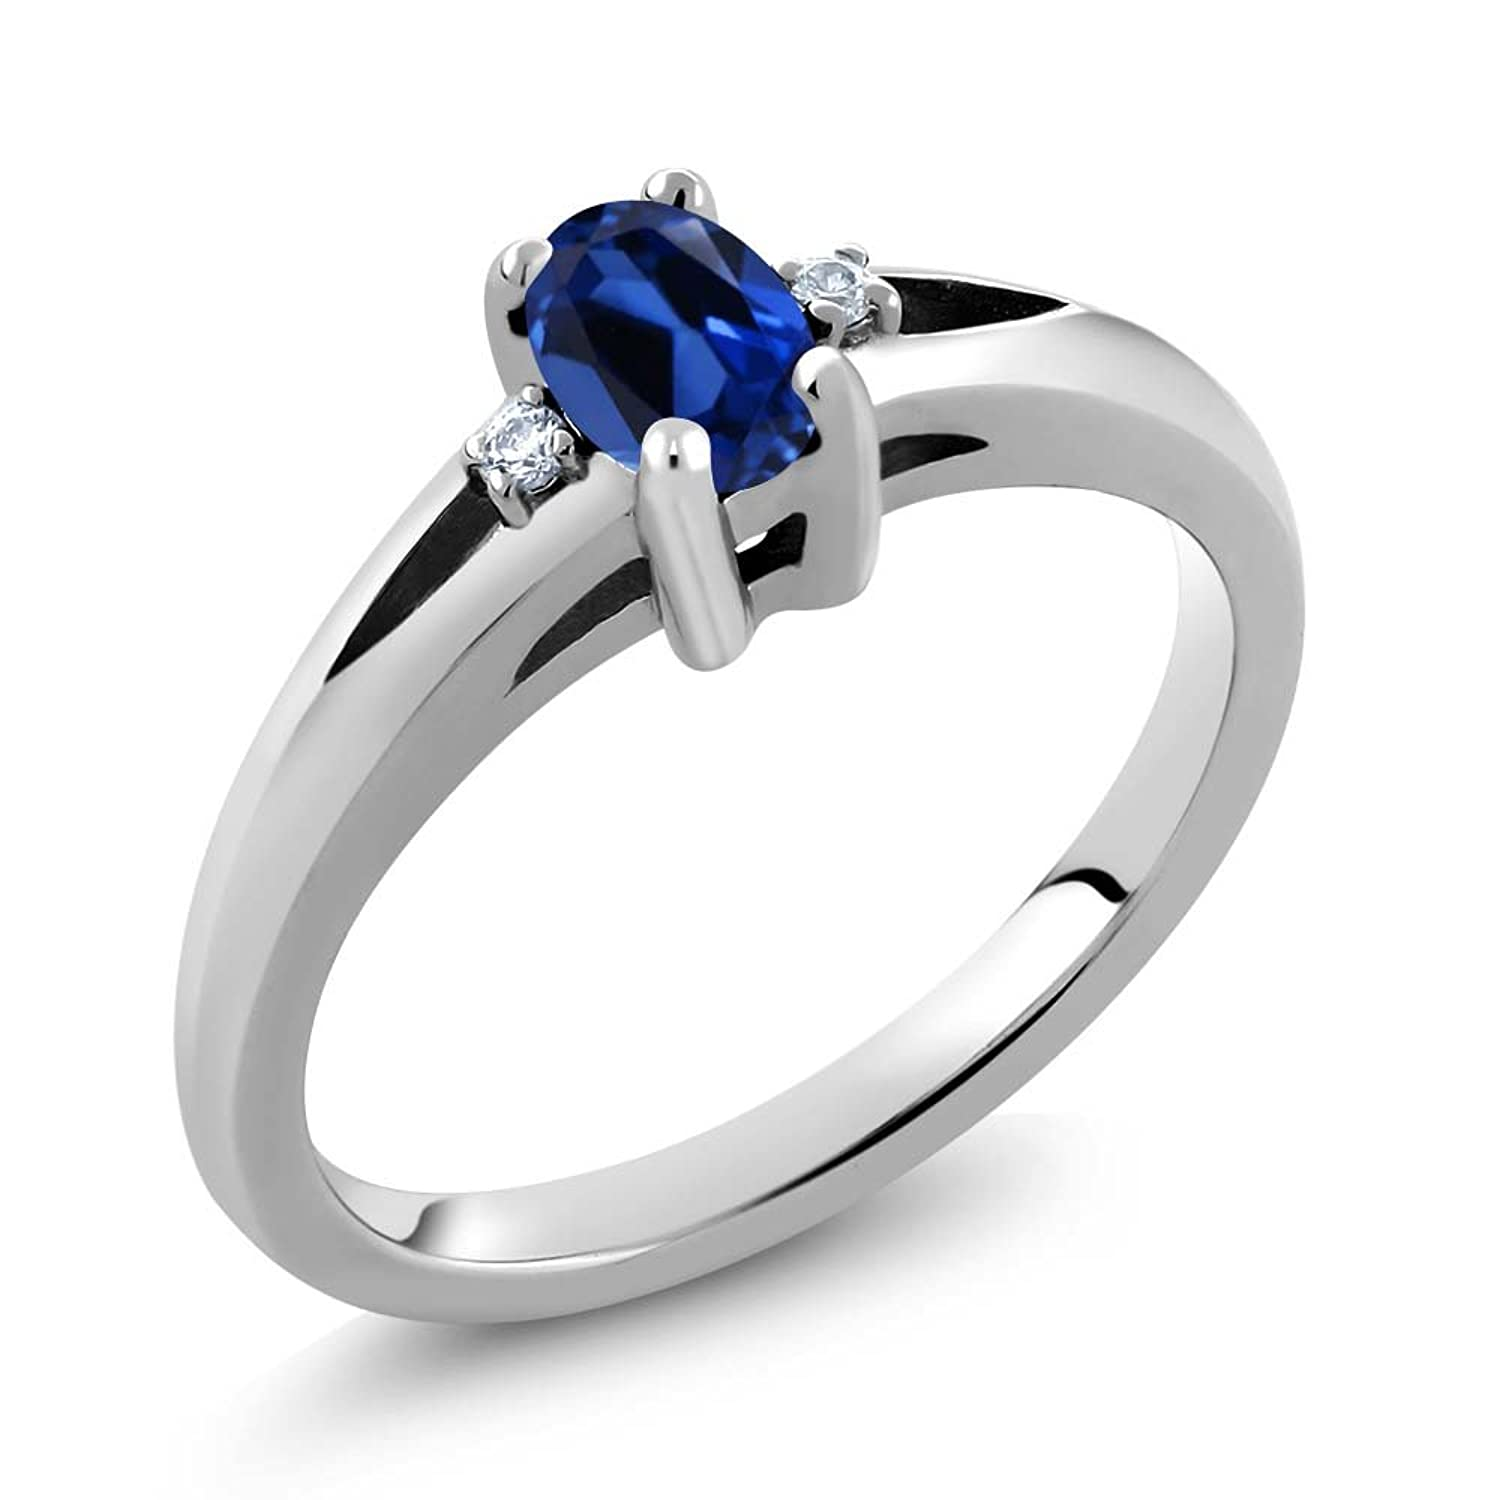 0.71 Ct Oval Blue Simulated Sapphire 925 Sterling Silver Ring